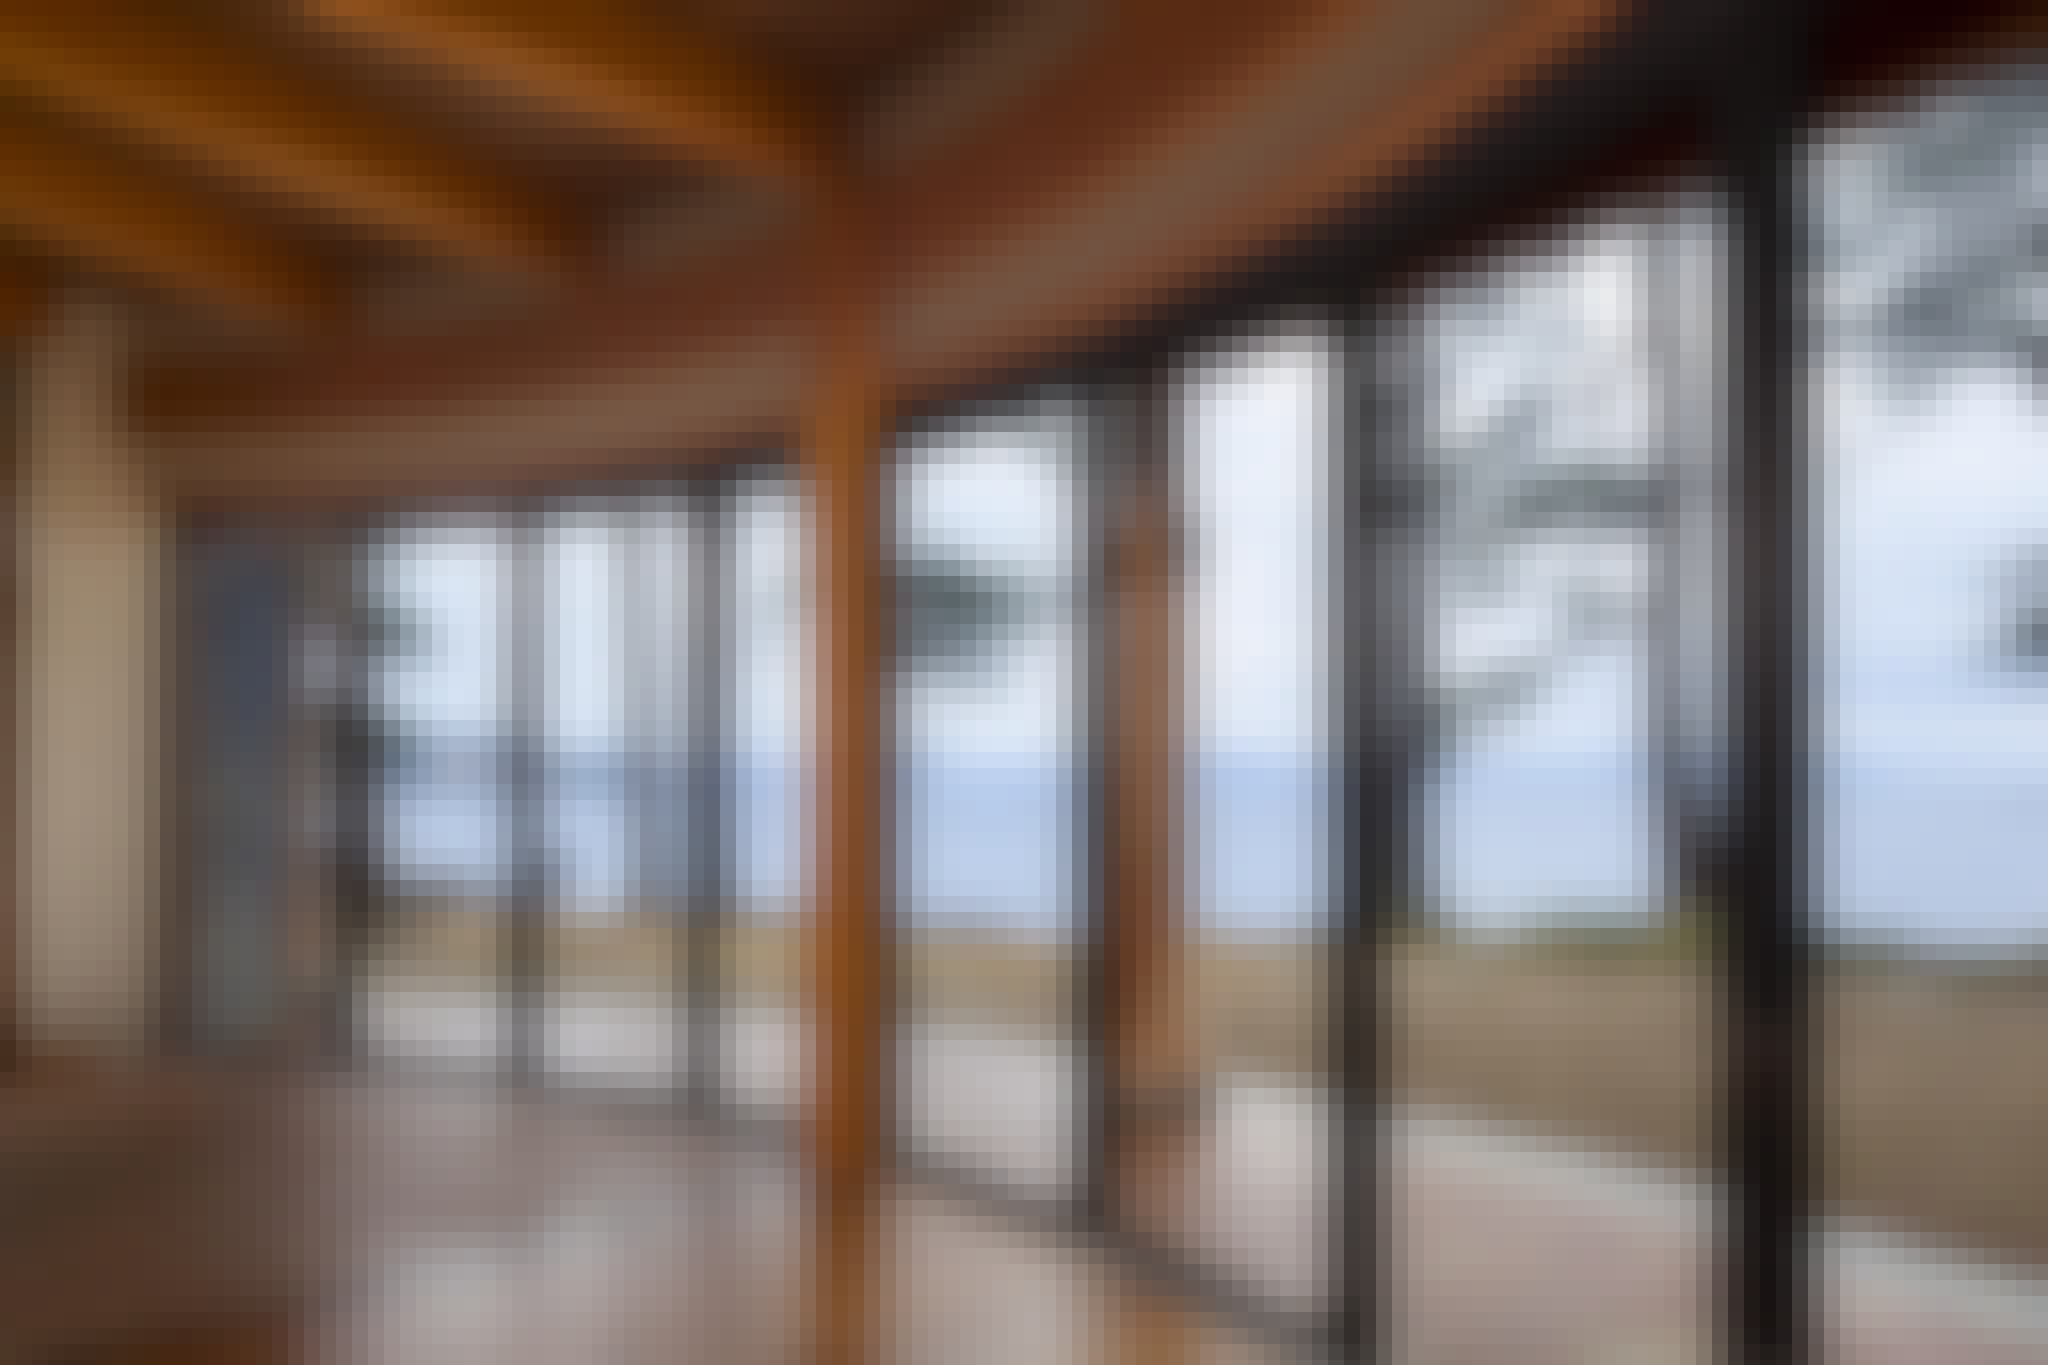 Japanese Walls Using HSW60 Sliding Glass Wall System